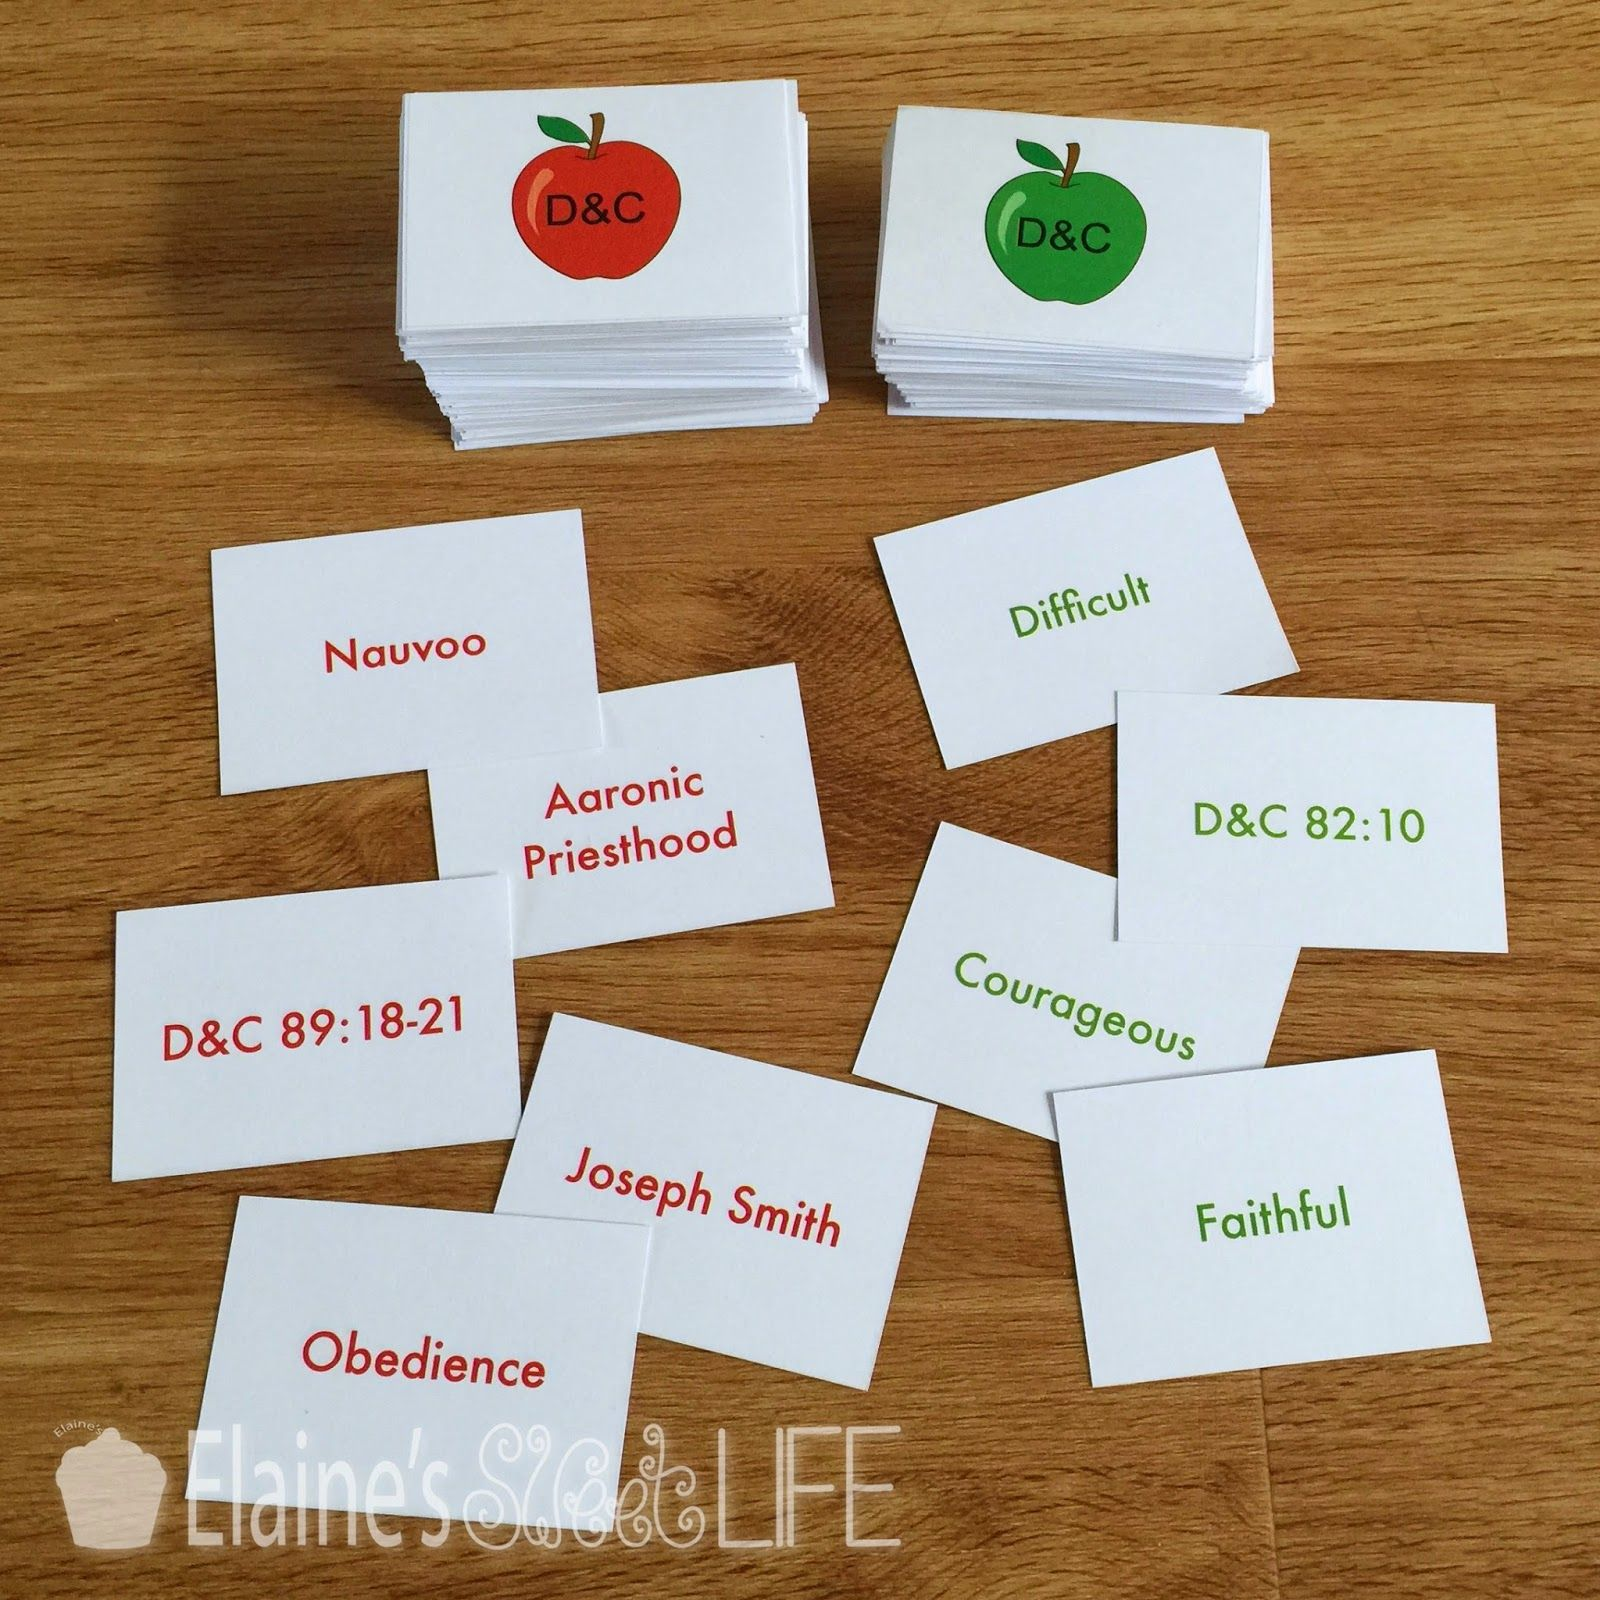 photograph about Apples to Apples Cards Printable named Elaines Lovable Lifestyle: Doctrine Covenants Apples towards Apples